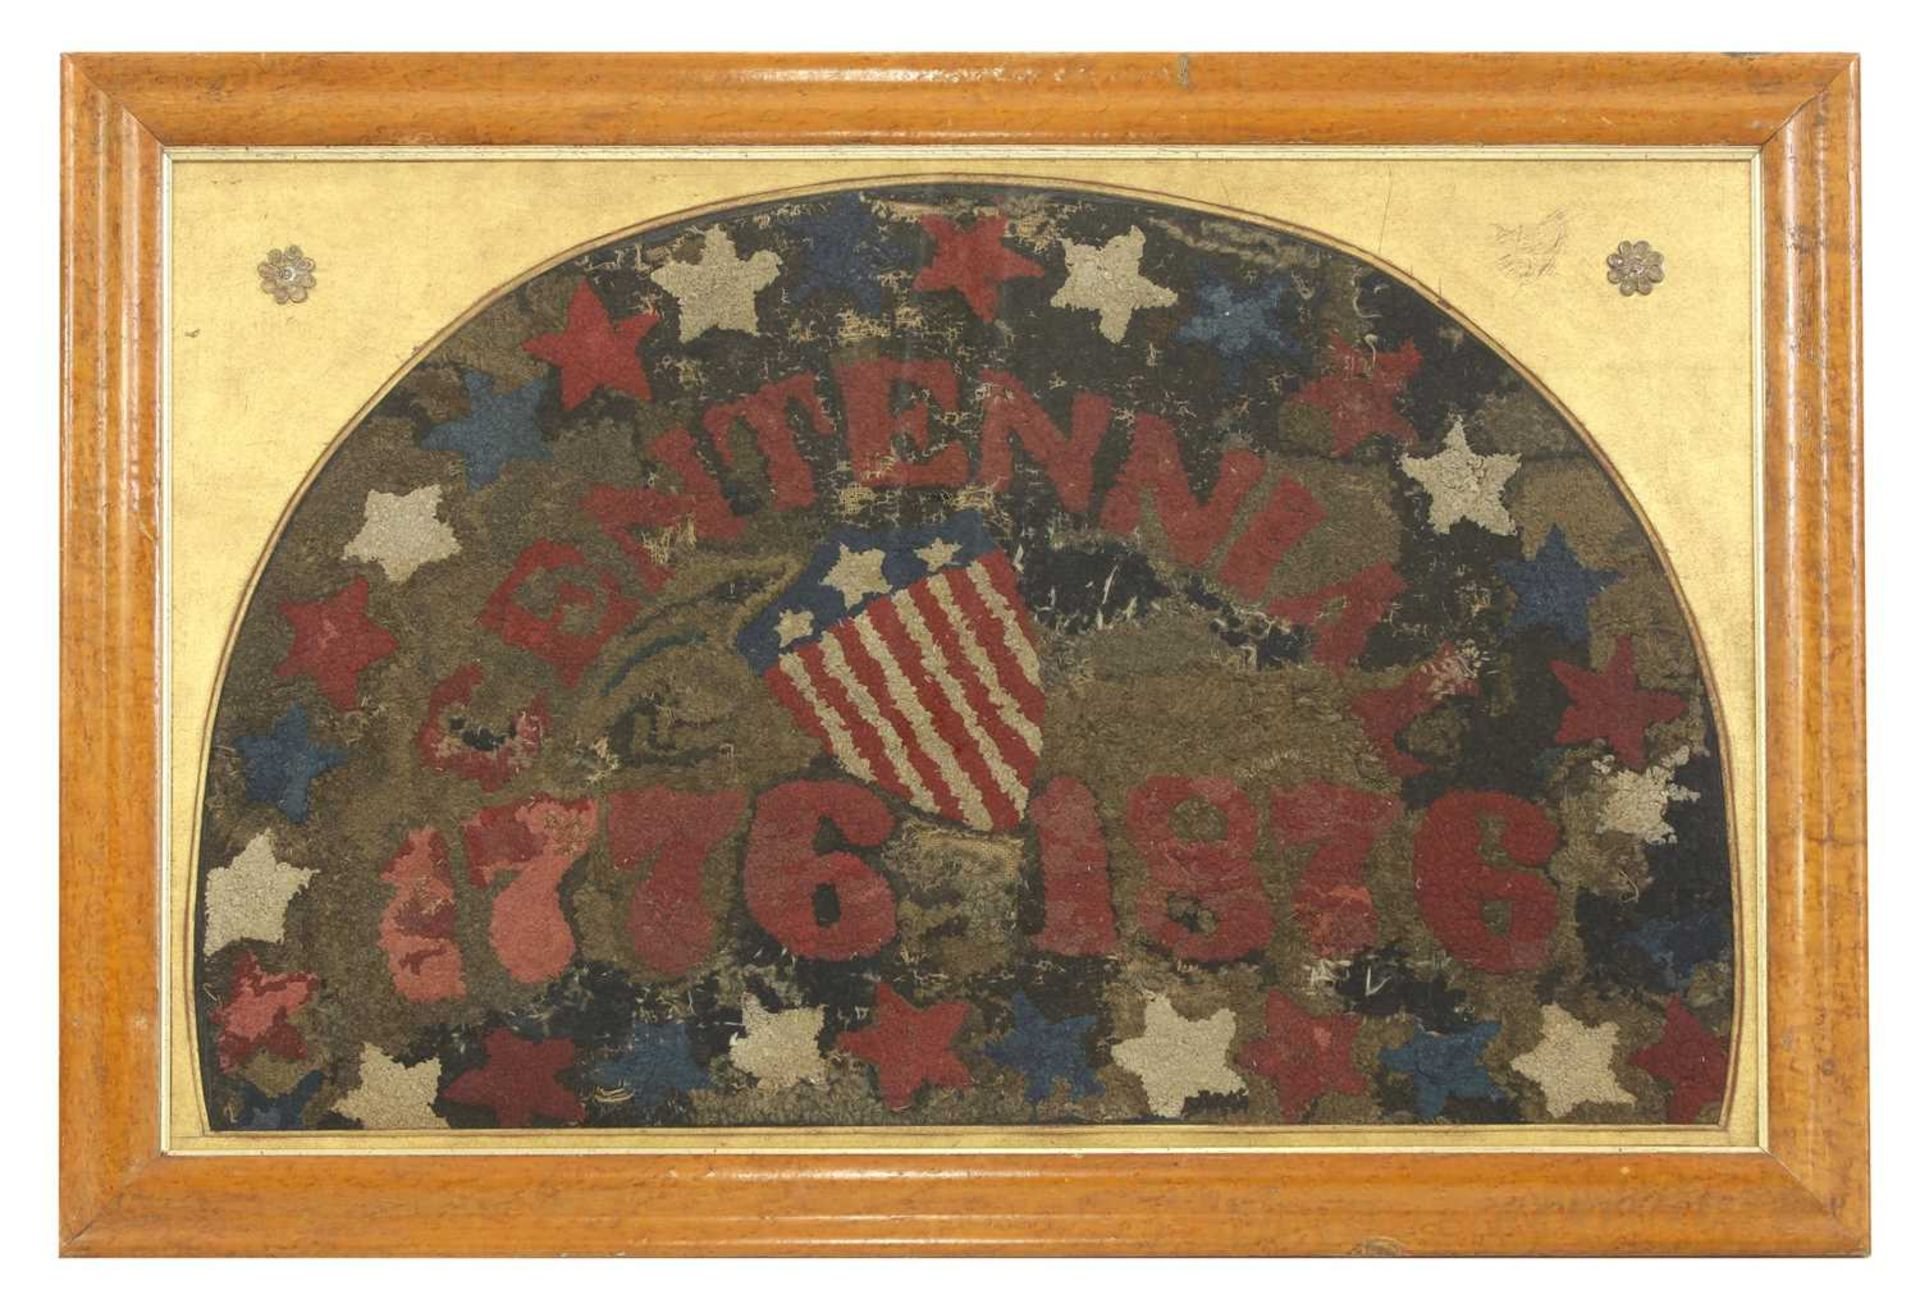 An unusual North American centennial hook rug,